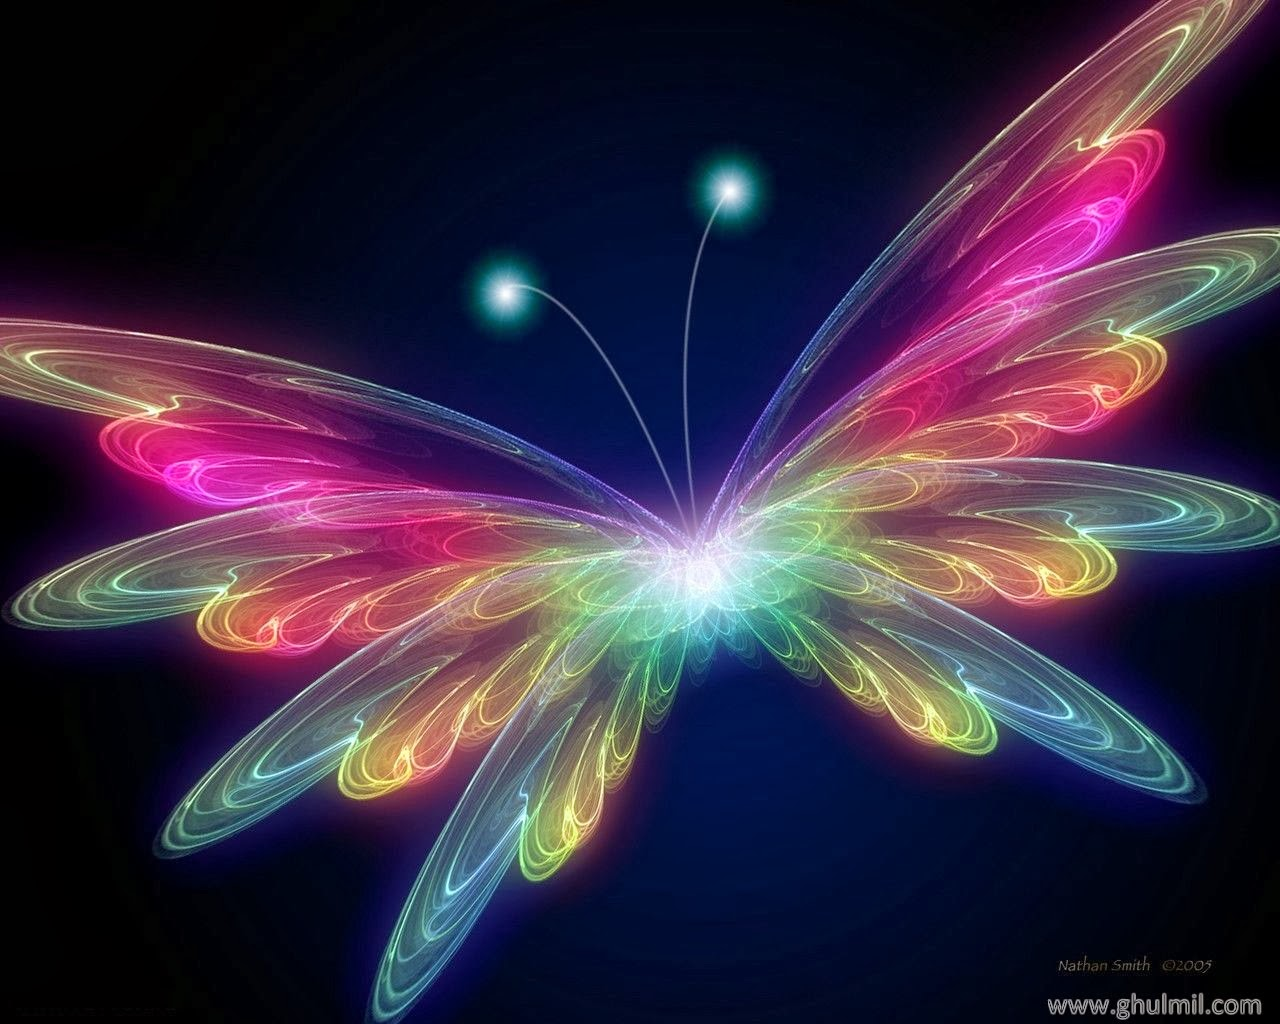 Free live butterfly wallpaper - beautiful desktop wallpapers 2014